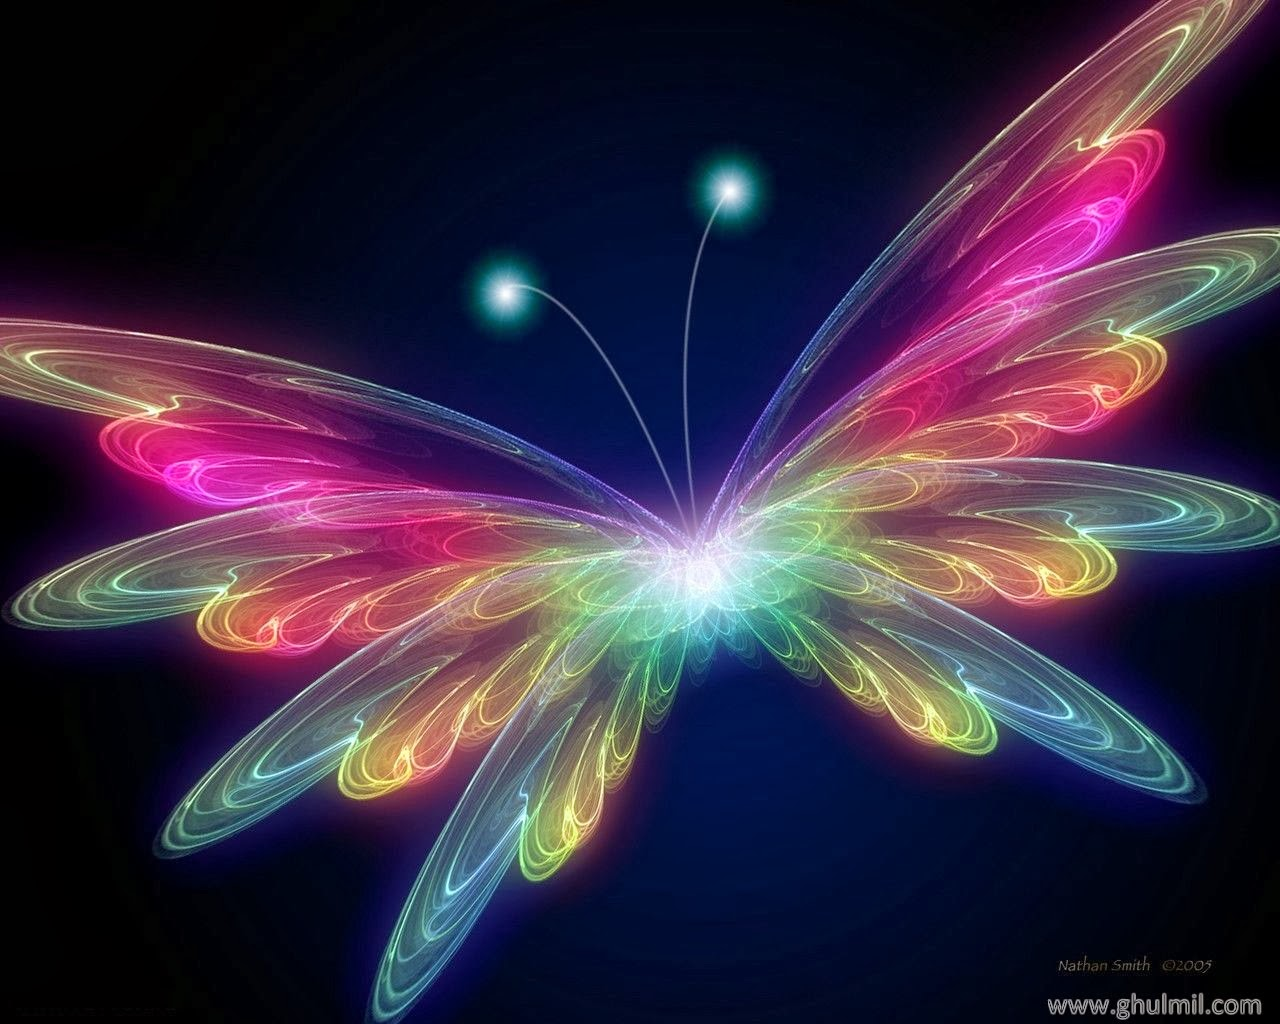 Free live butterfly wallpaper - beautiful desktop wallpapers 2014